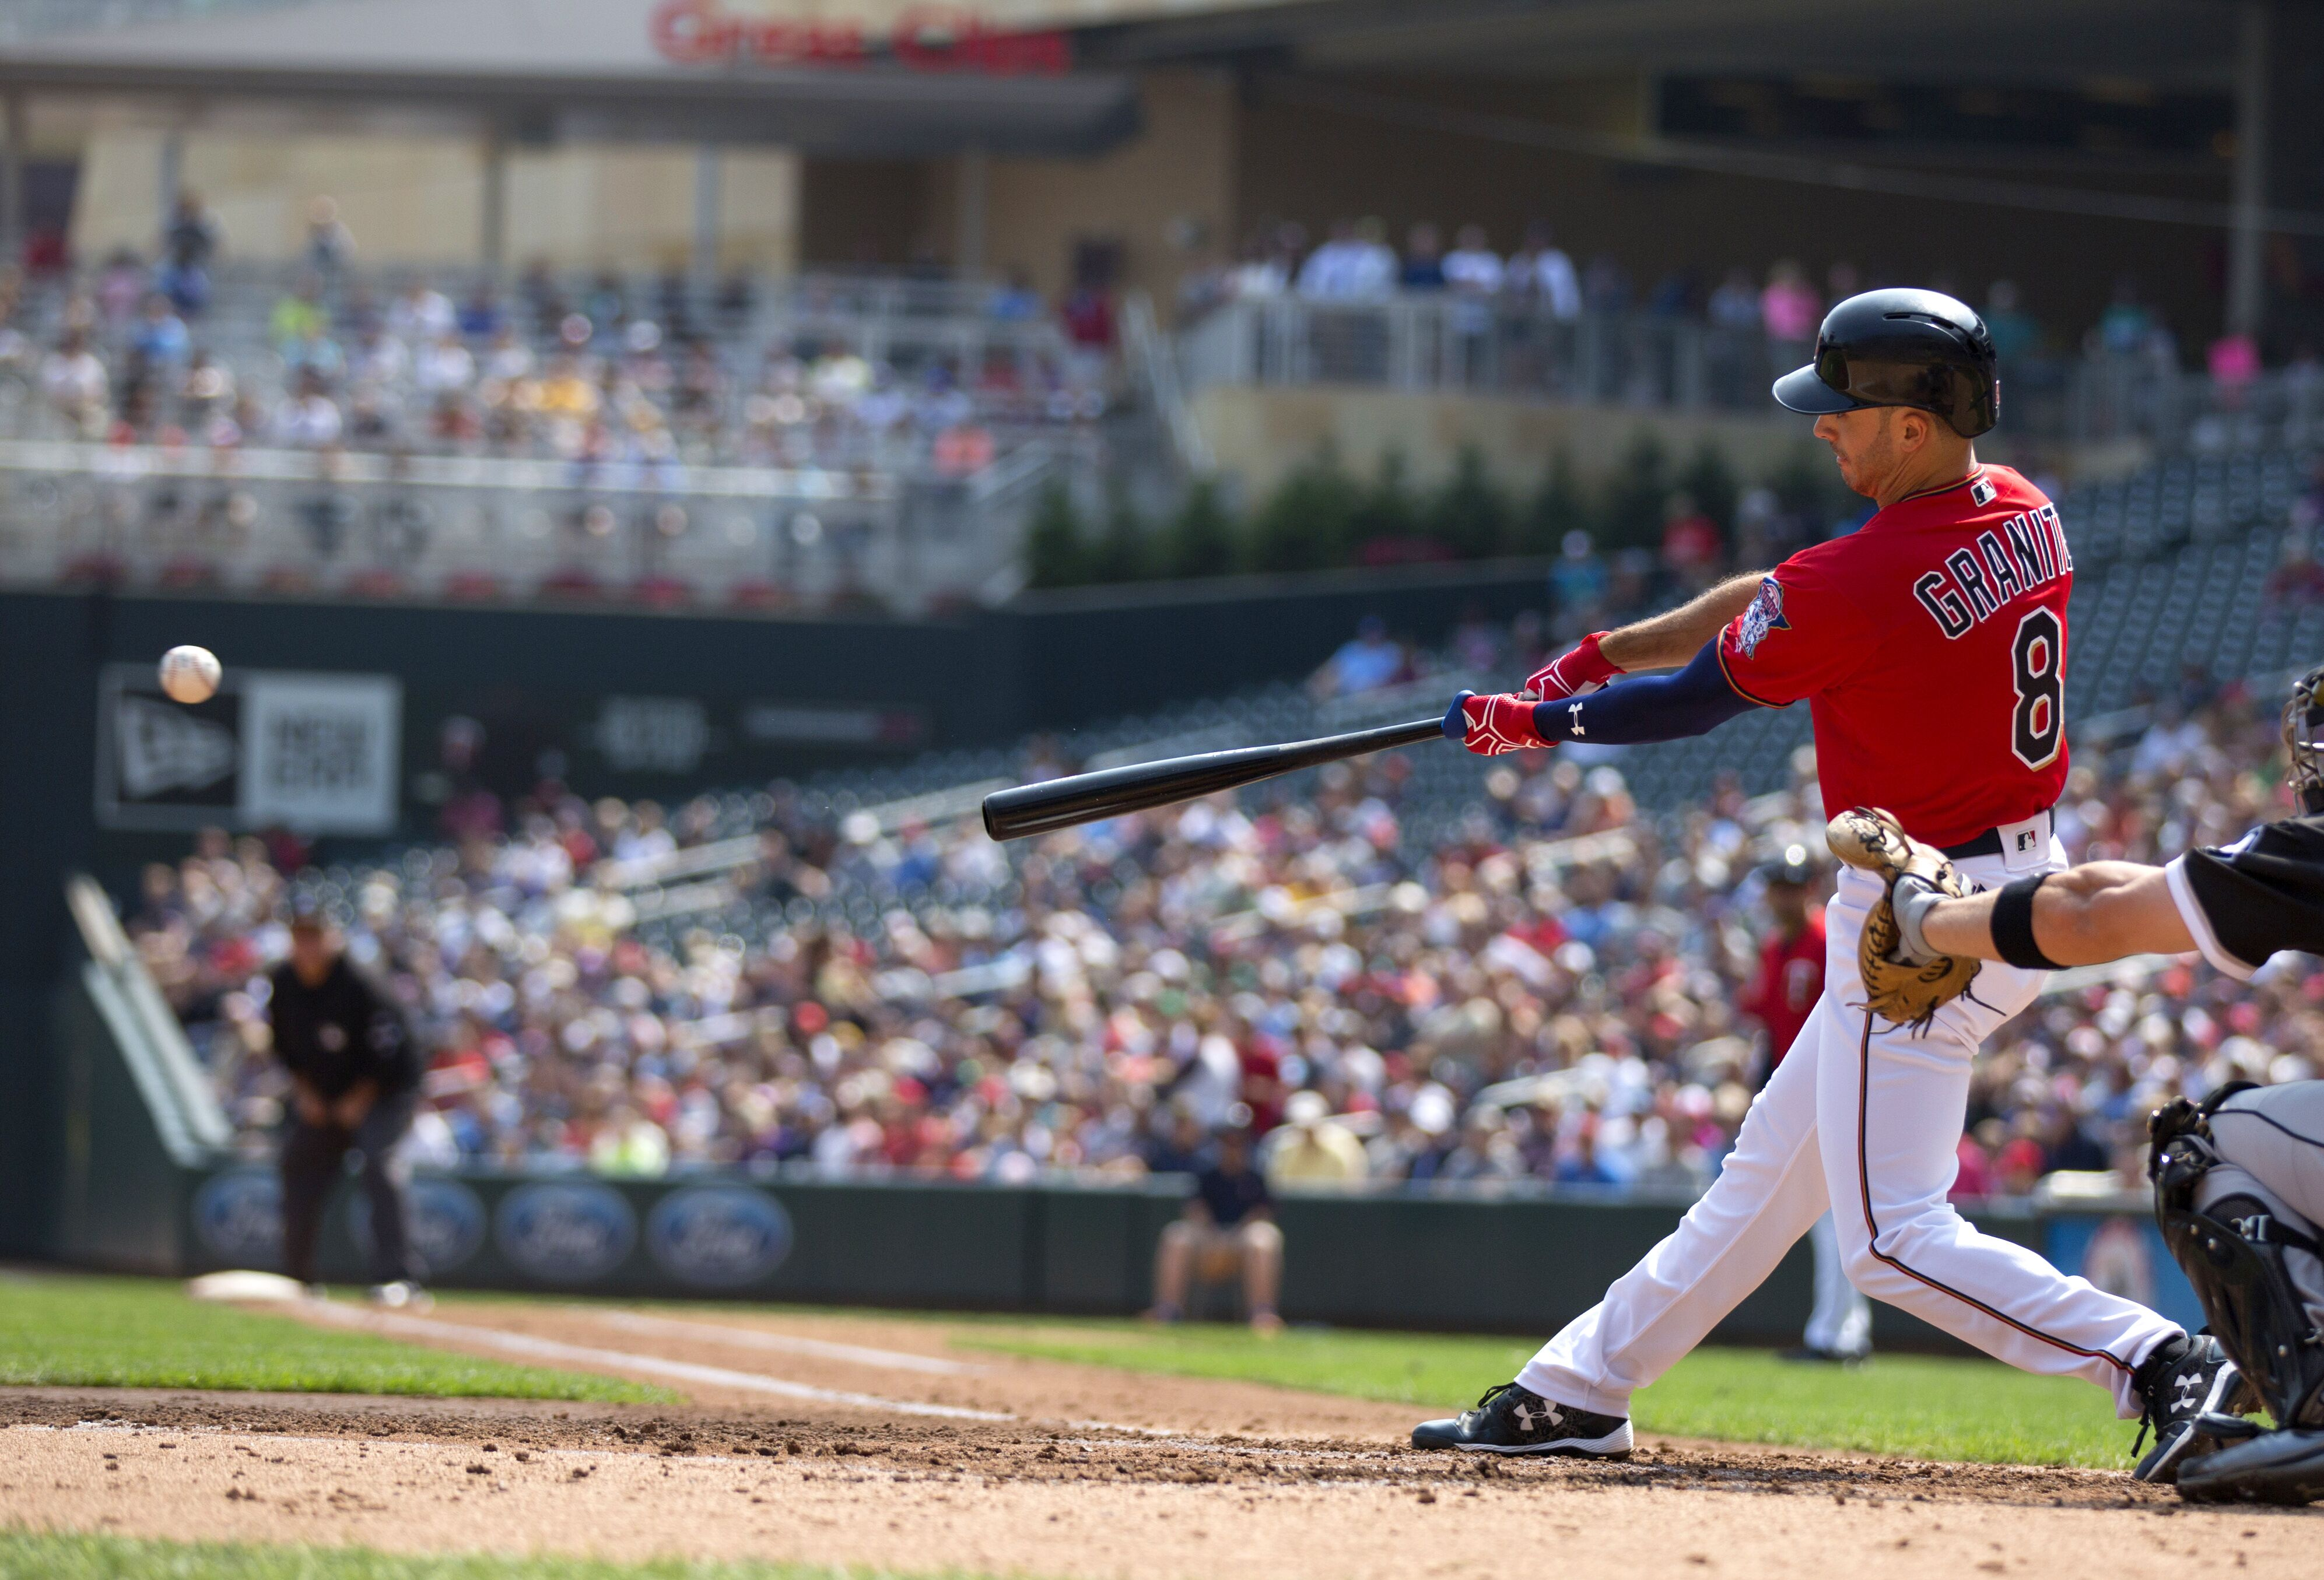 Minnesota Twins Rochester Red Wings Affiliate Season Wrap Up